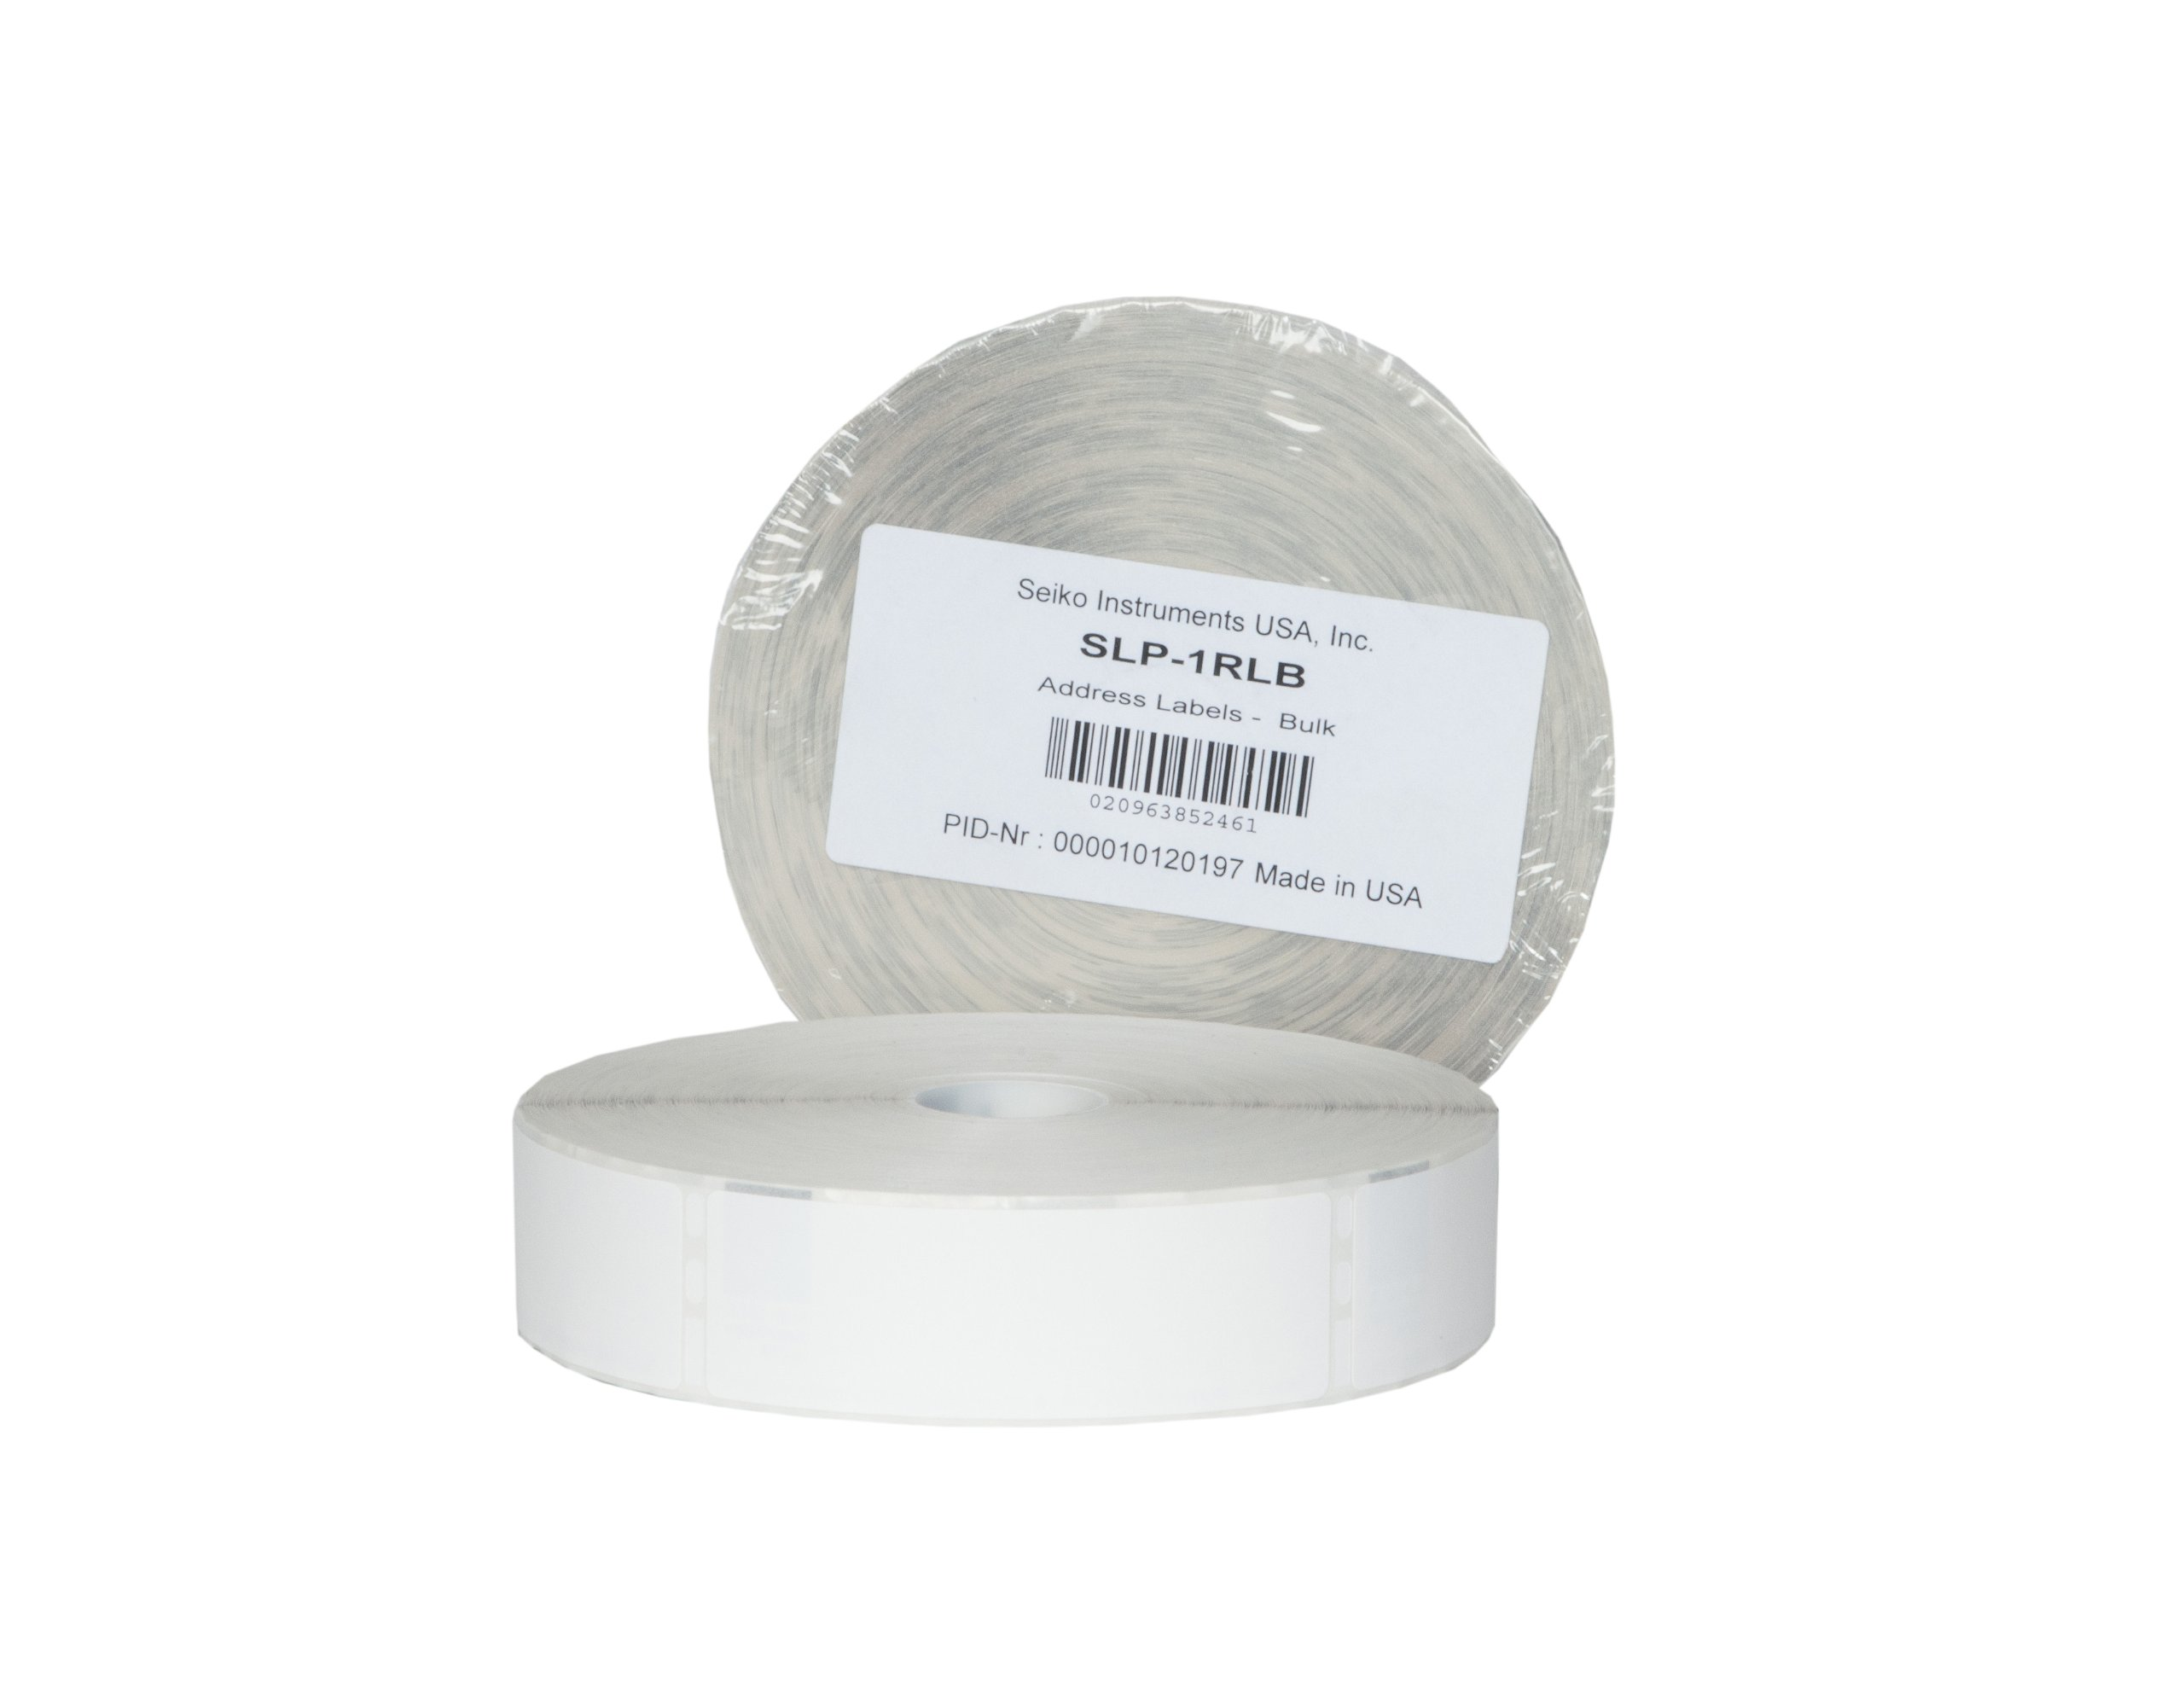 Seiko Instruments White Address Labels for Smart Label Printer 650 and 650SE (SLP-1RLB)